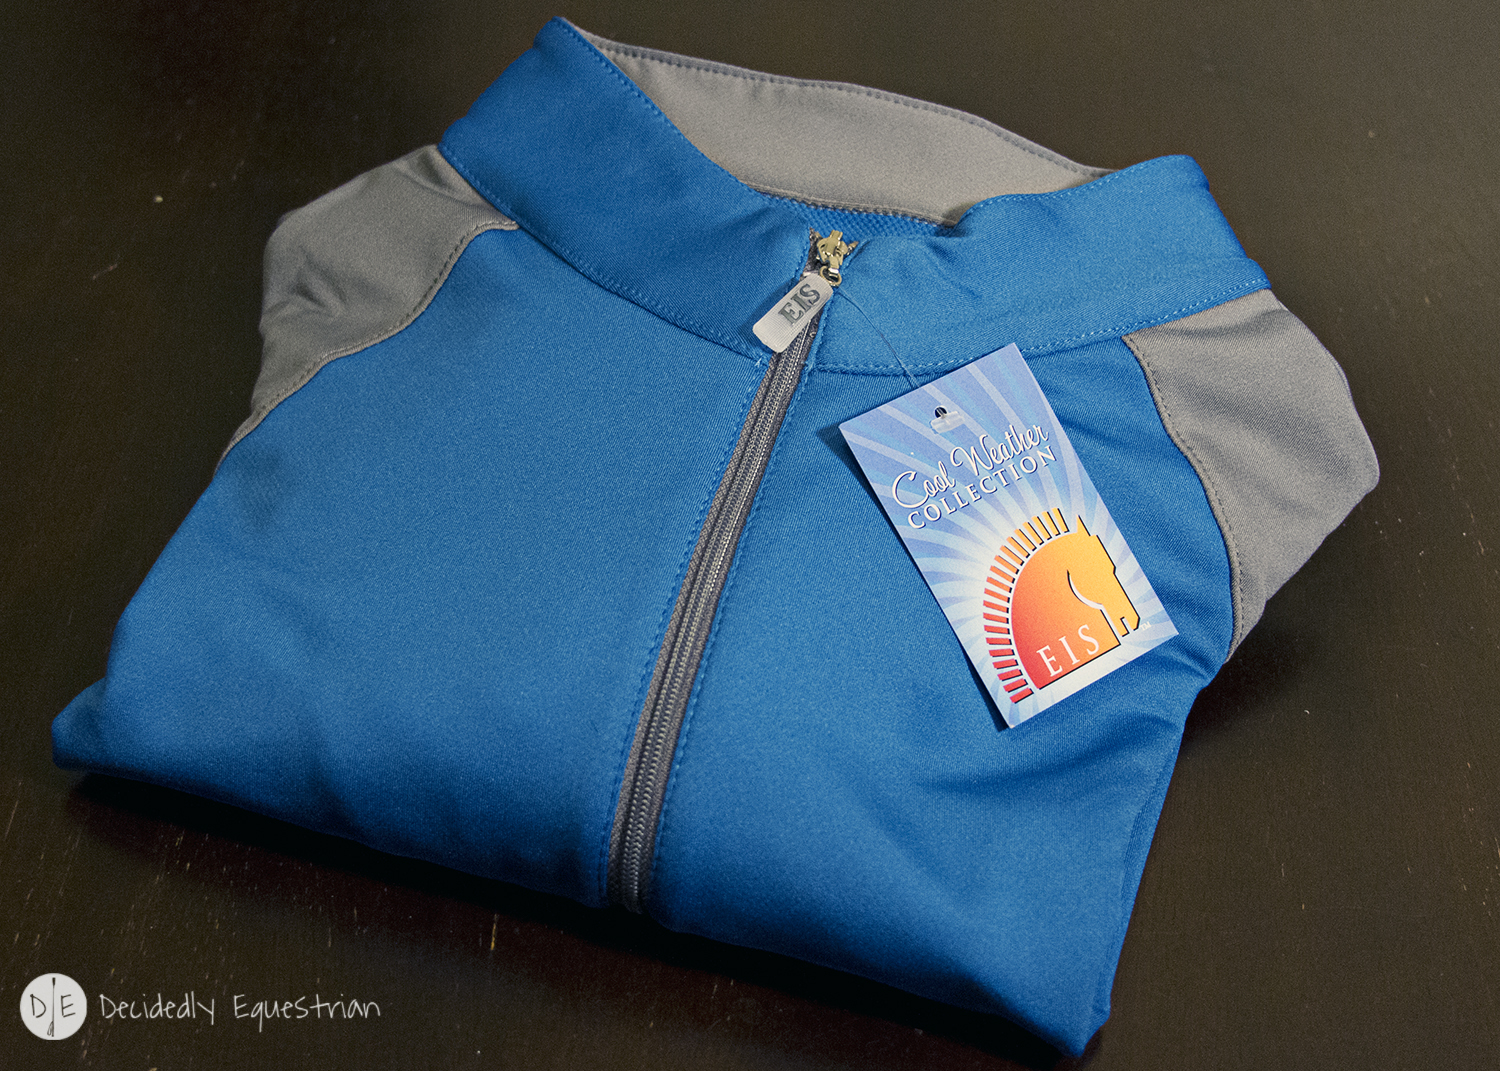 EquiInStyle Cool Weather Tech Shirt Review